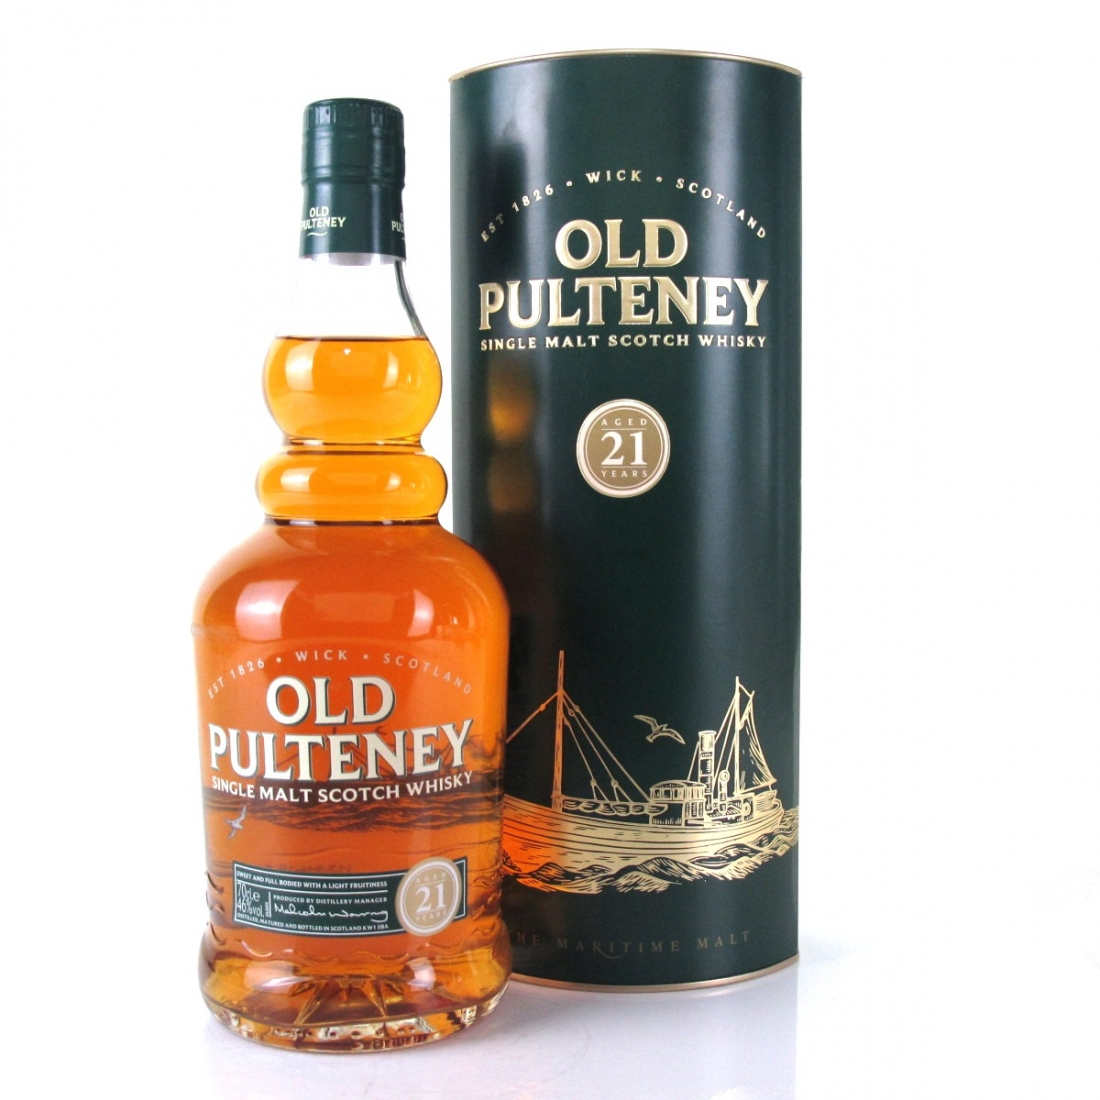 Old Pulteney 21 Year Old